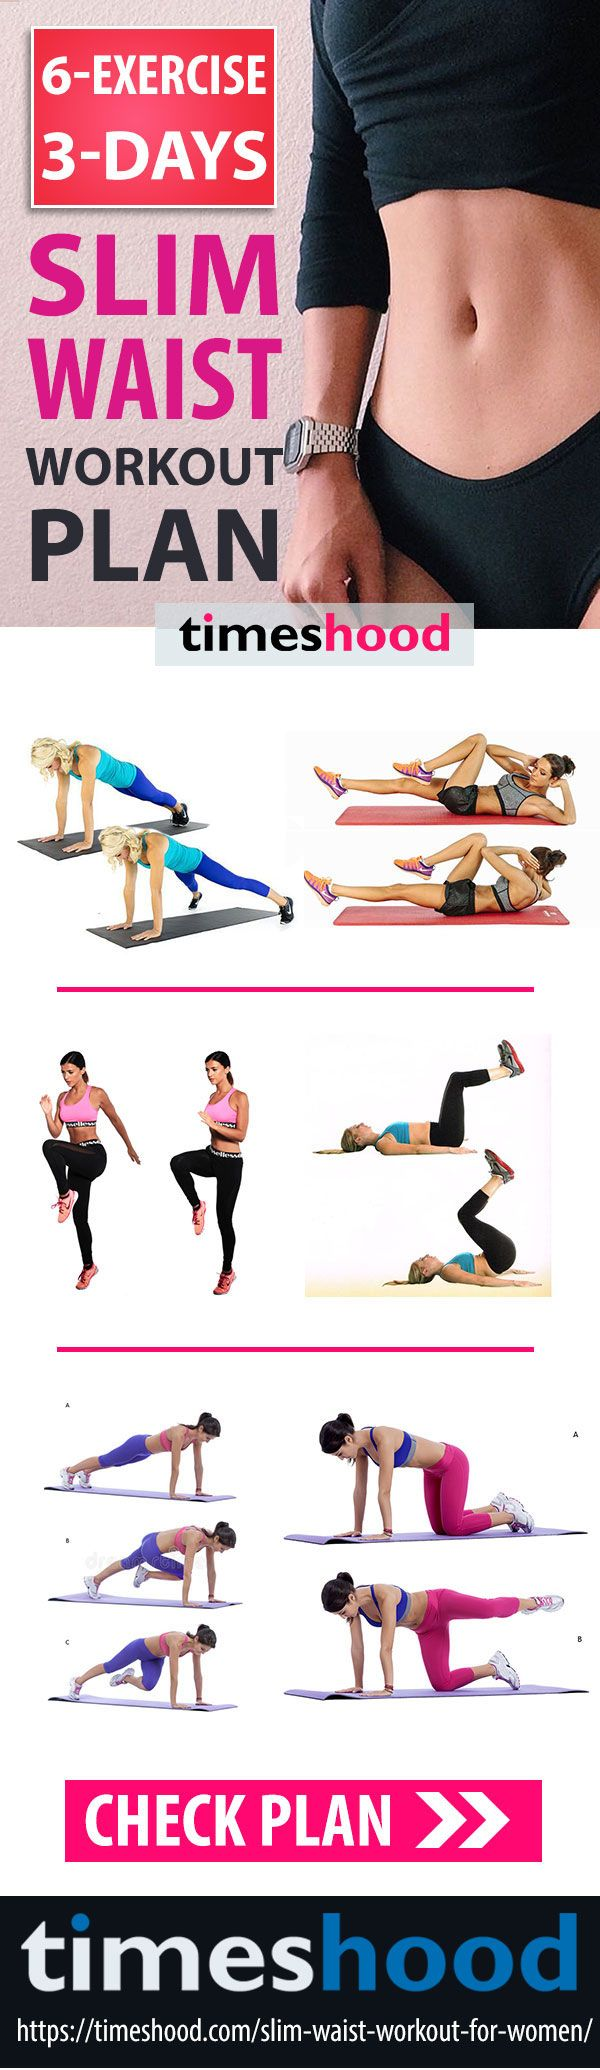 3 Days Best Waist Slimming Workout Plan. Waist Slimming Exercise. Burn fat from belly workout. Flat belly workout plan for 3 days. 6 Exercise and 3 days small waist workout challenge. Lose belly fat and get small waist with these exercise. Slim waist workout plan. #WorkoutChallenge #Fitness #Exercisetips #bellyfat https://timeshood.com/slim-waist-workout-for-women/